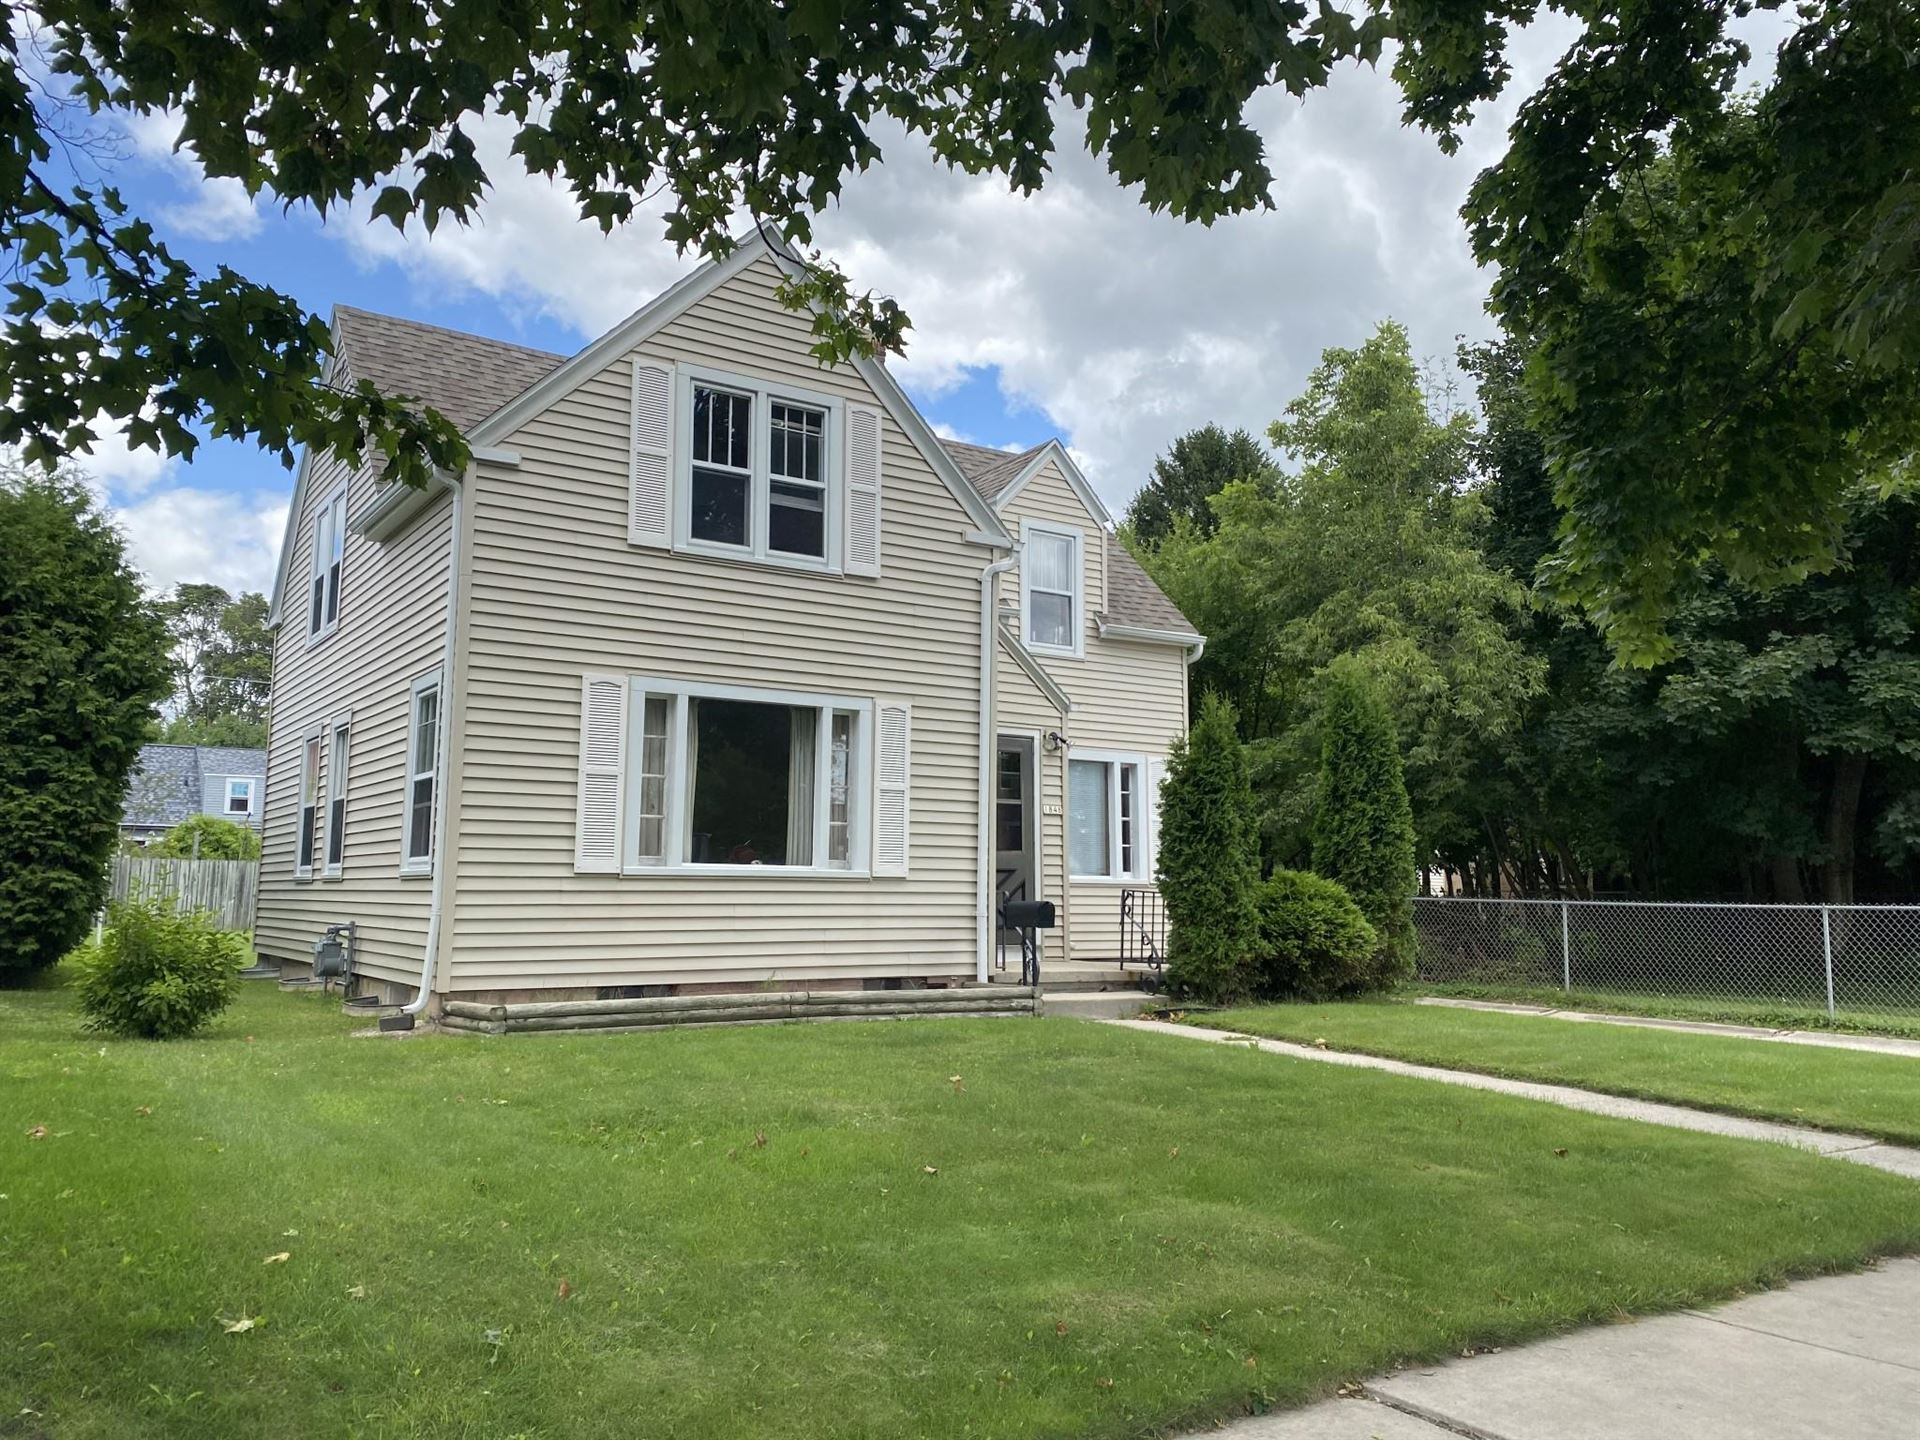 1848 Clermont St, Manitowoc, WI 54220 - #: 1702515